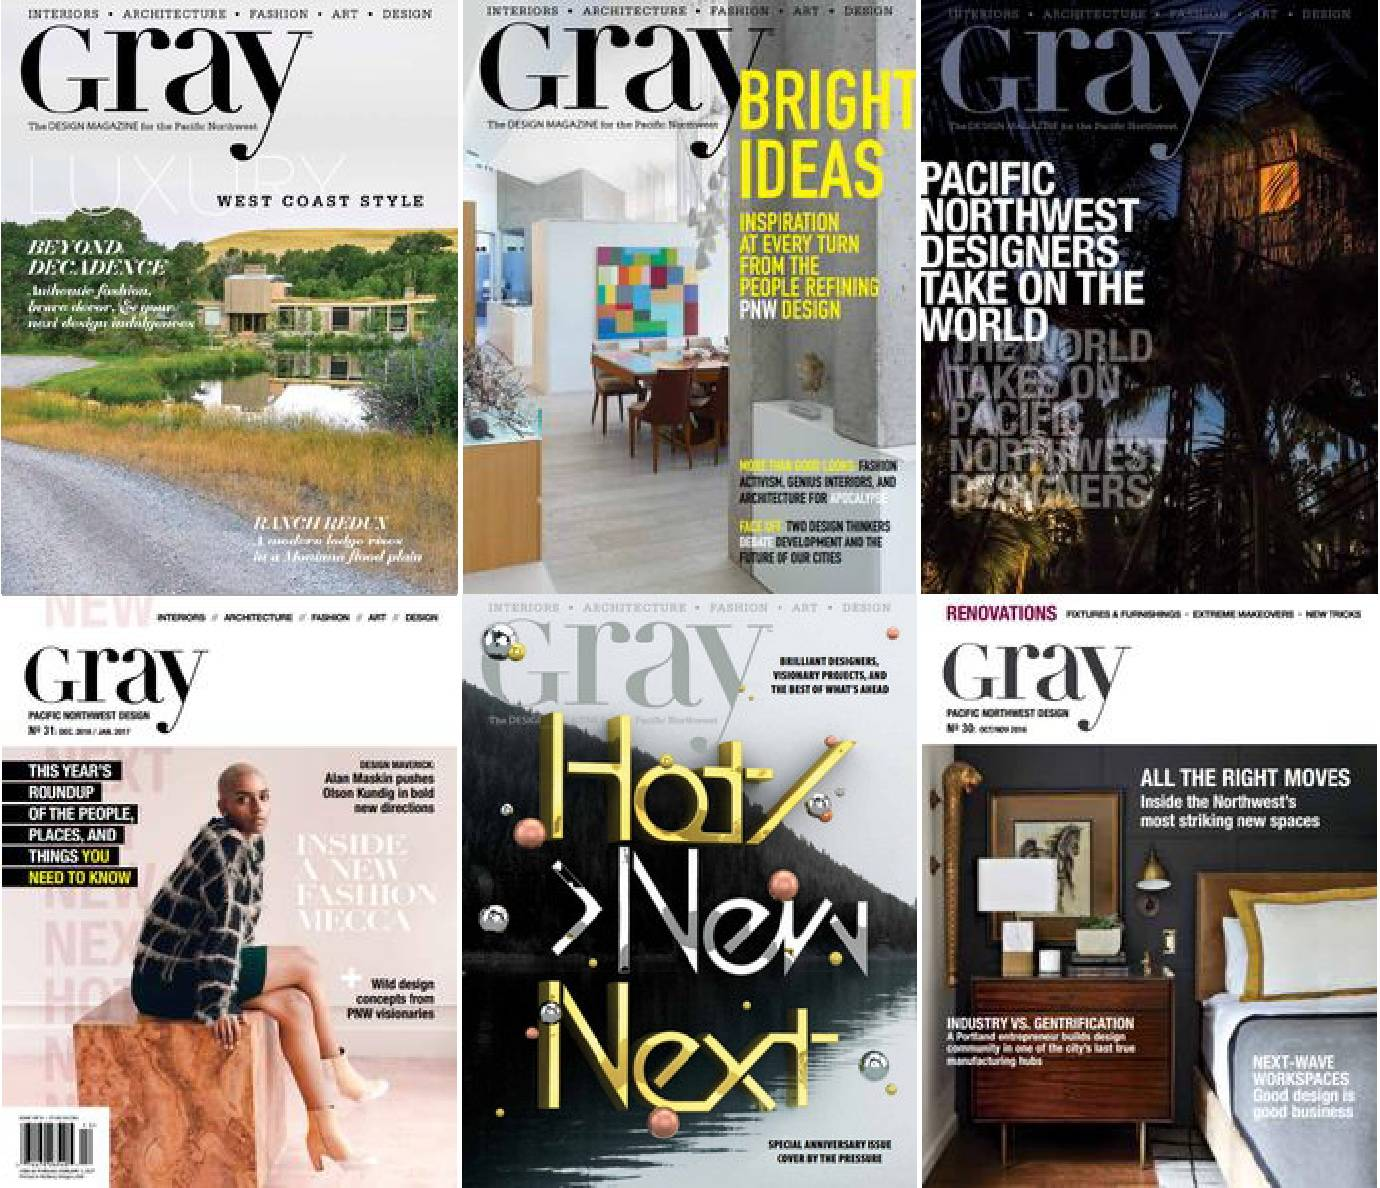 Gray Magazine - 2016 Full Year Issues Collection